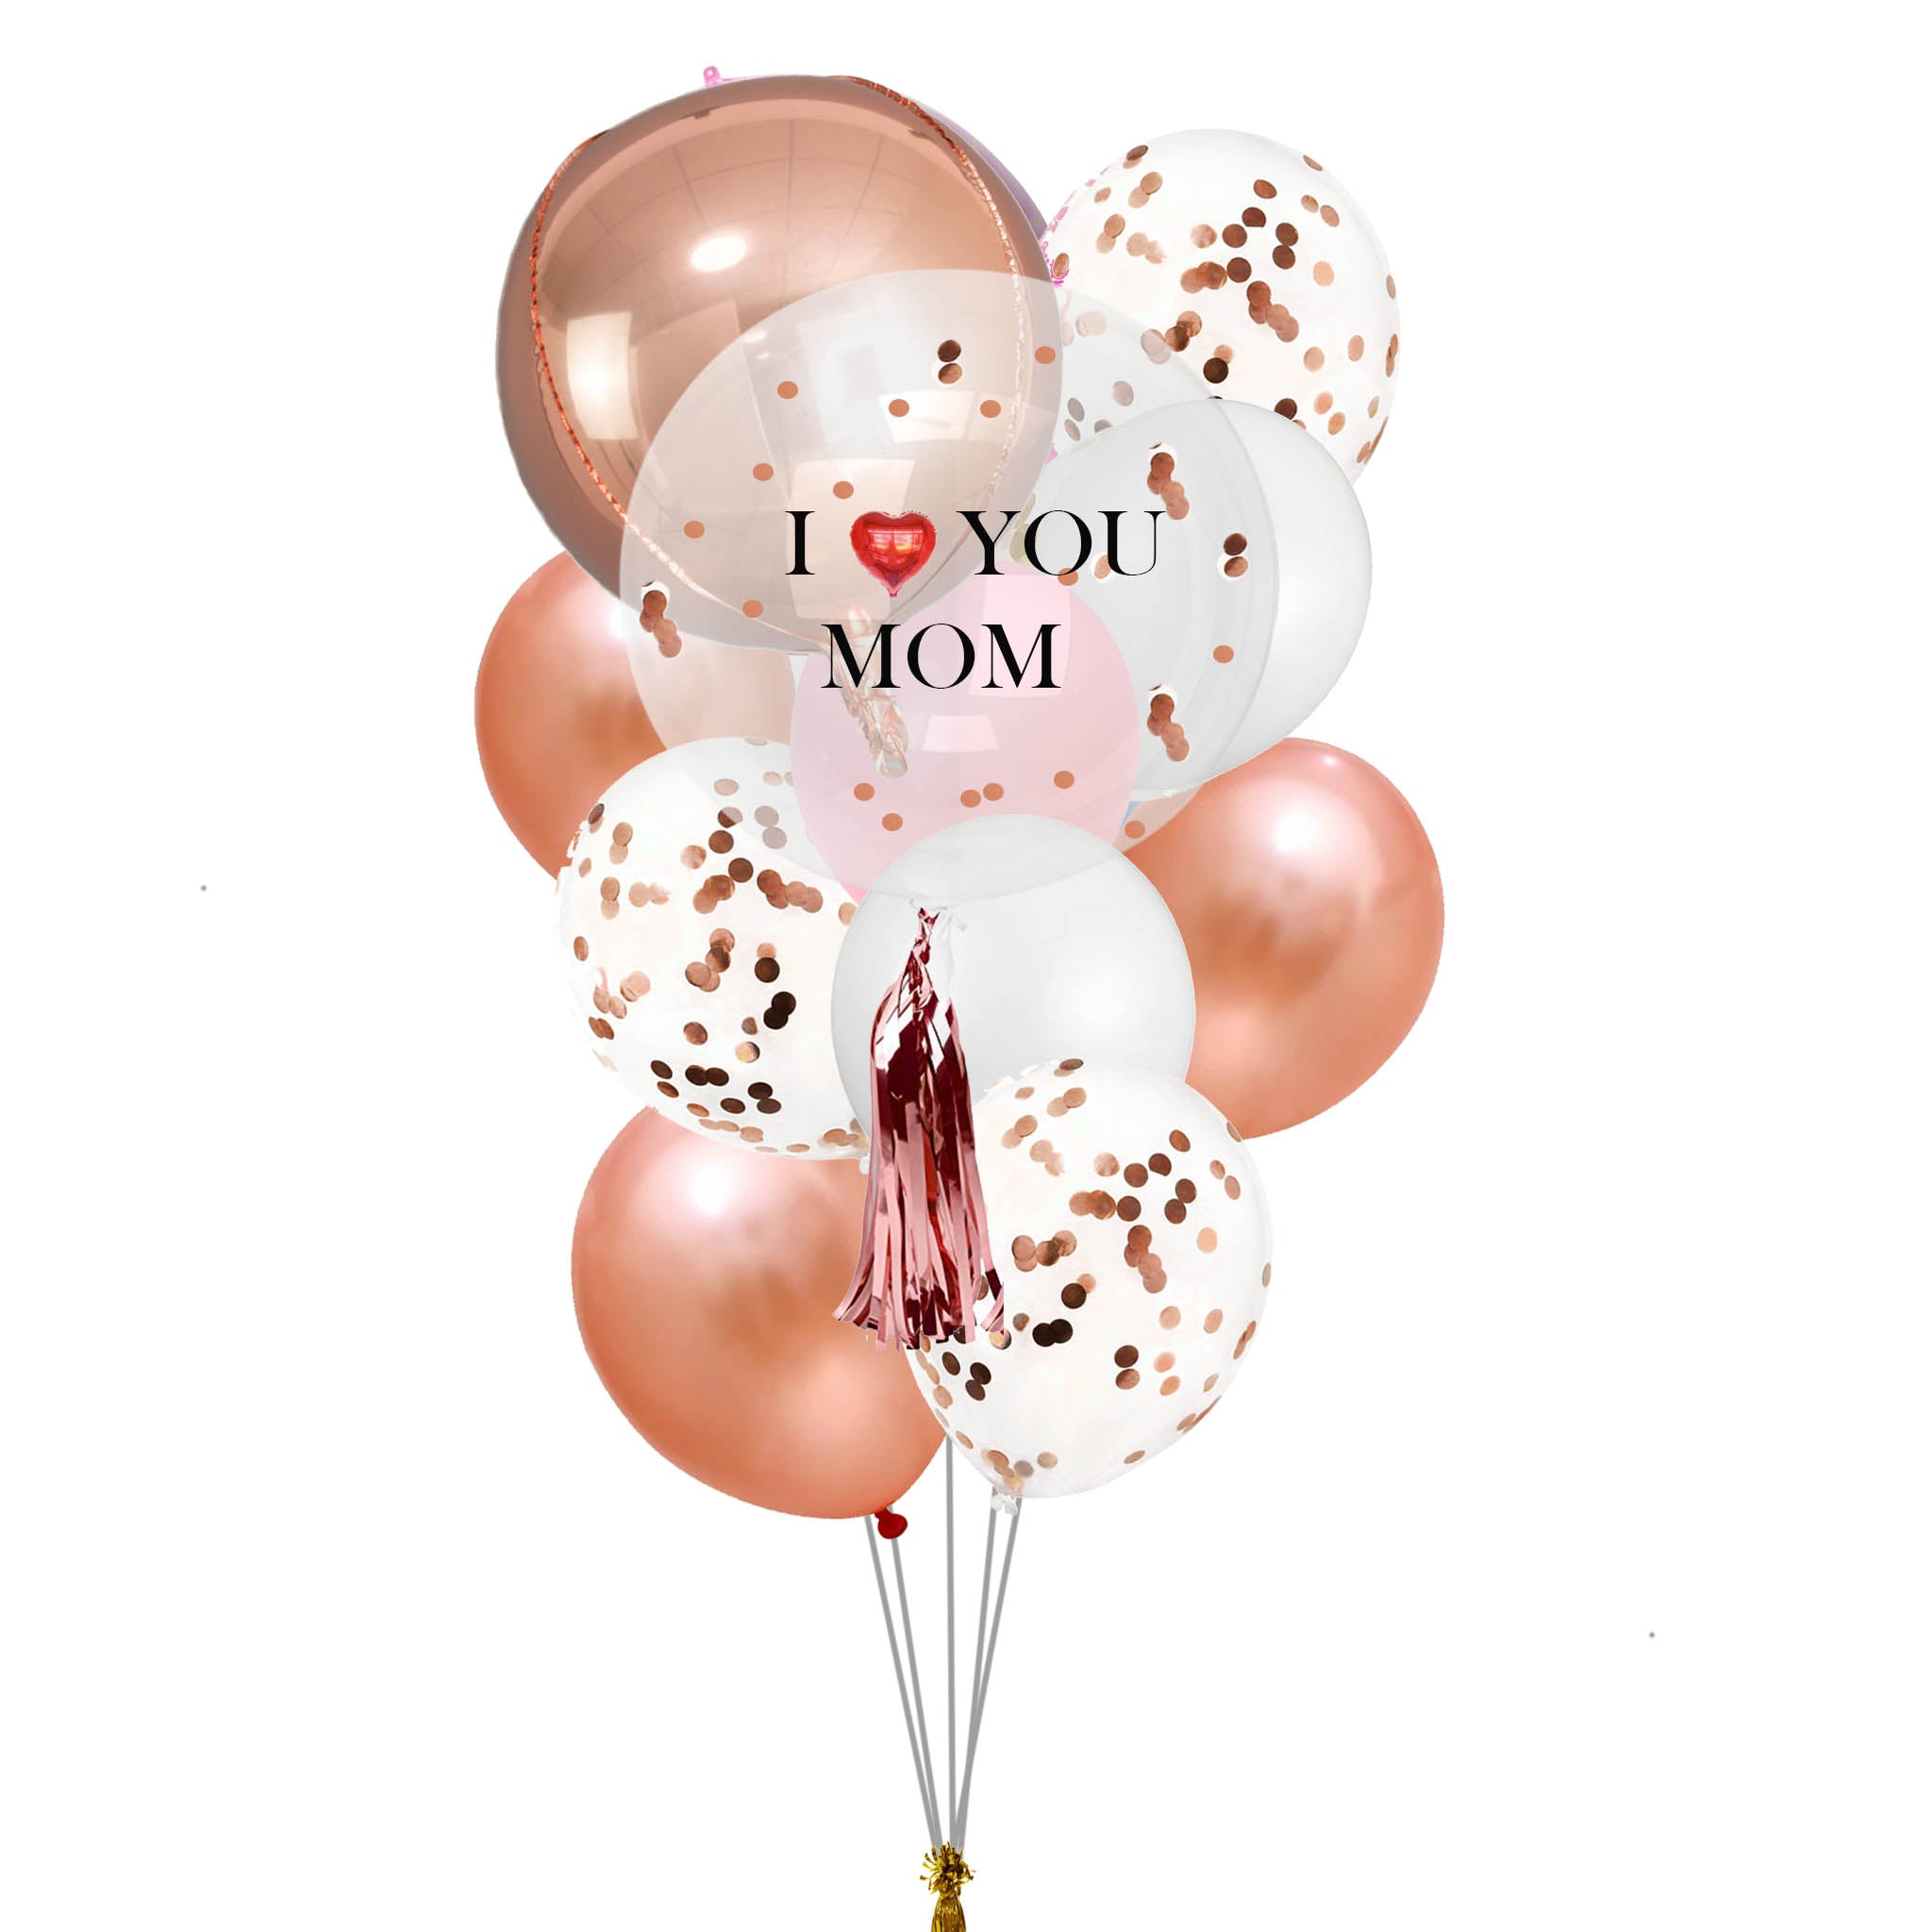 i love you mom customized balloons bouquet special gift delivery in Dubai